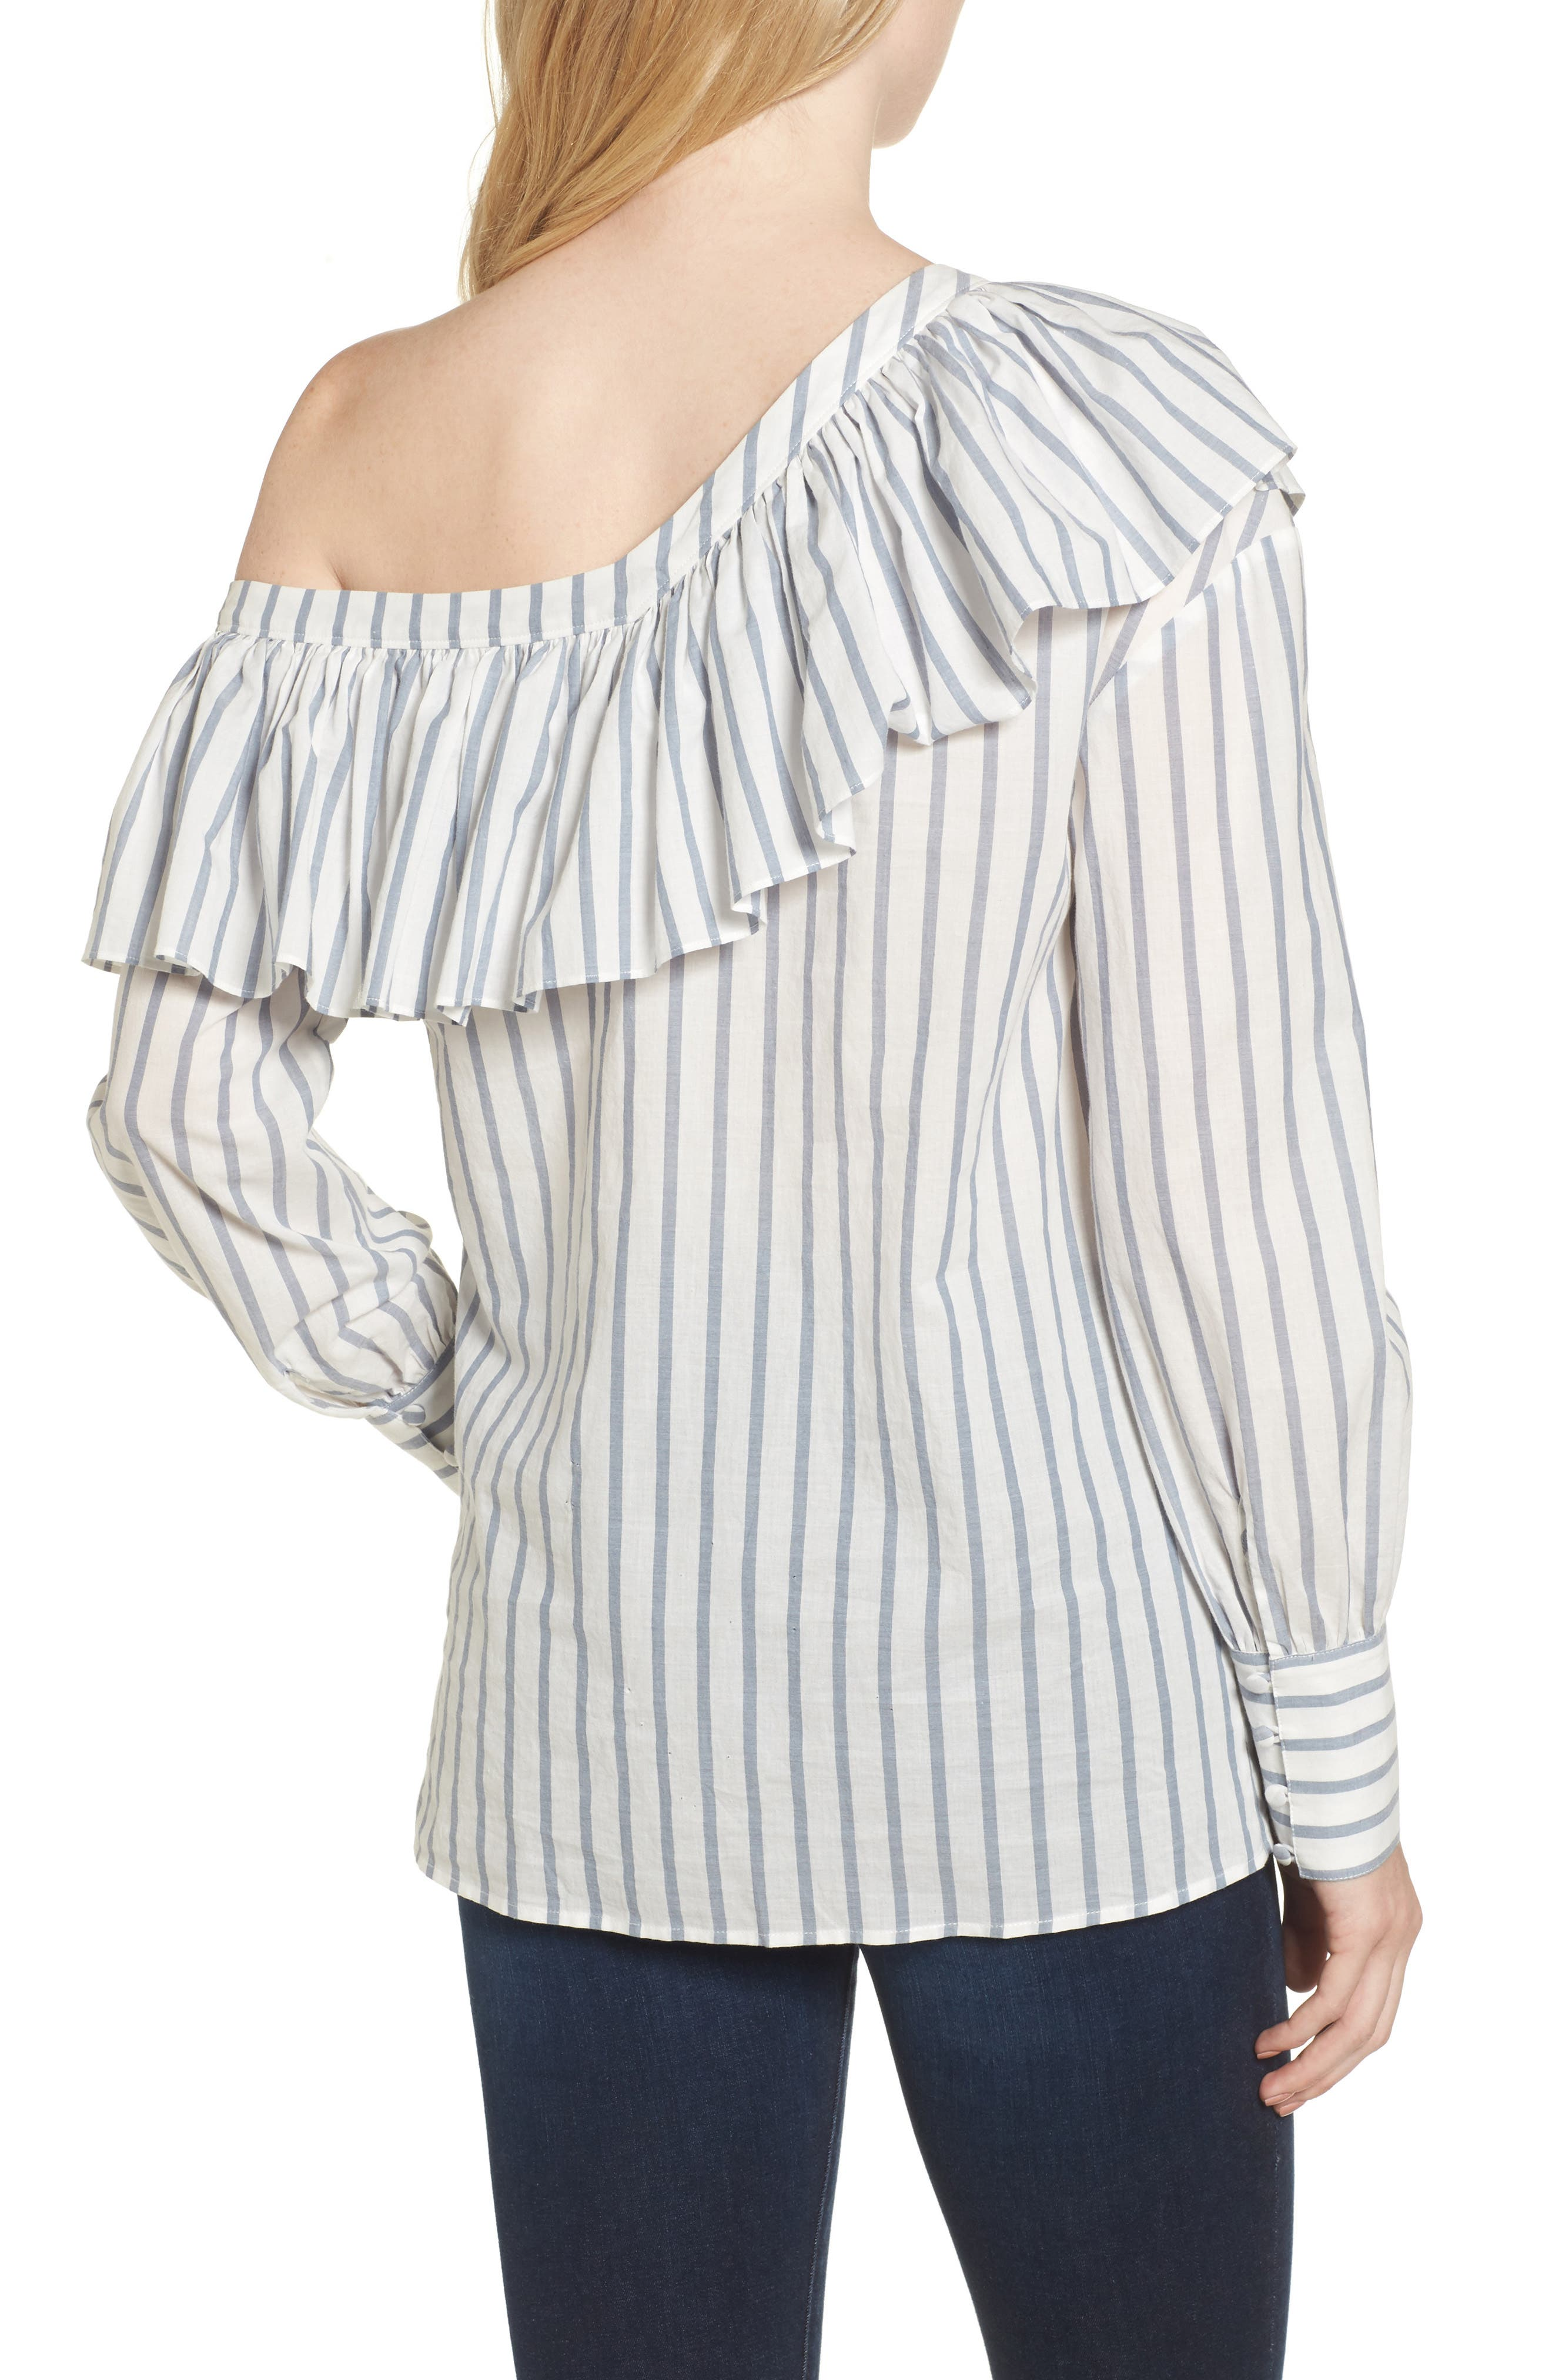 Halsey One-Shoulder Blouse,                             Alternate thumbnail 3, color,                             Papyrus / China Blue